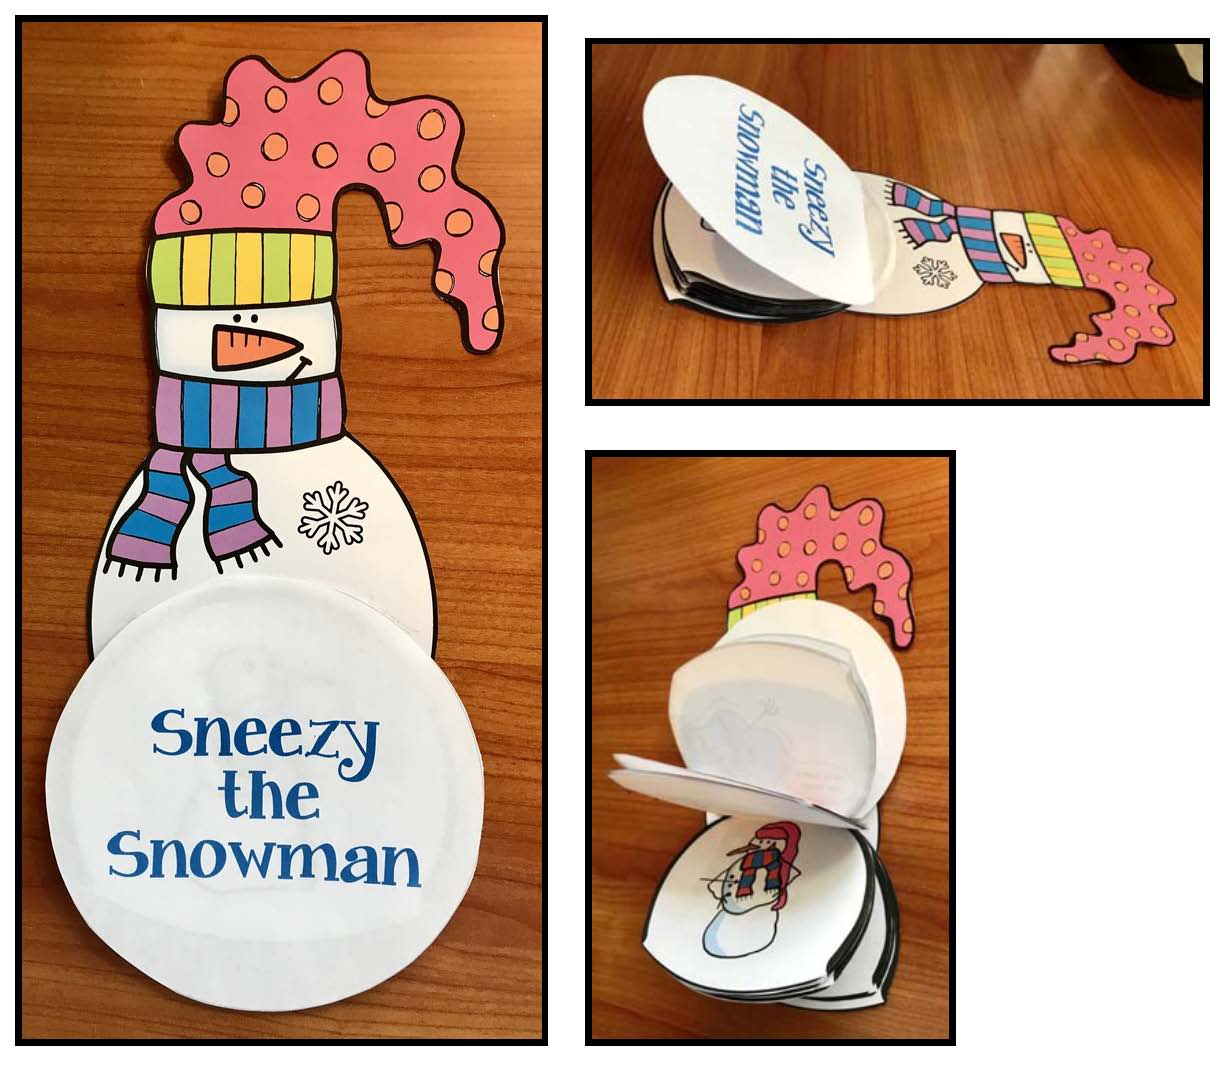 sneezy the snowman activities, sequencing & retelling a story activities, snowman activities, snowman crafts, winter stories for children, Sneezy the Snowman